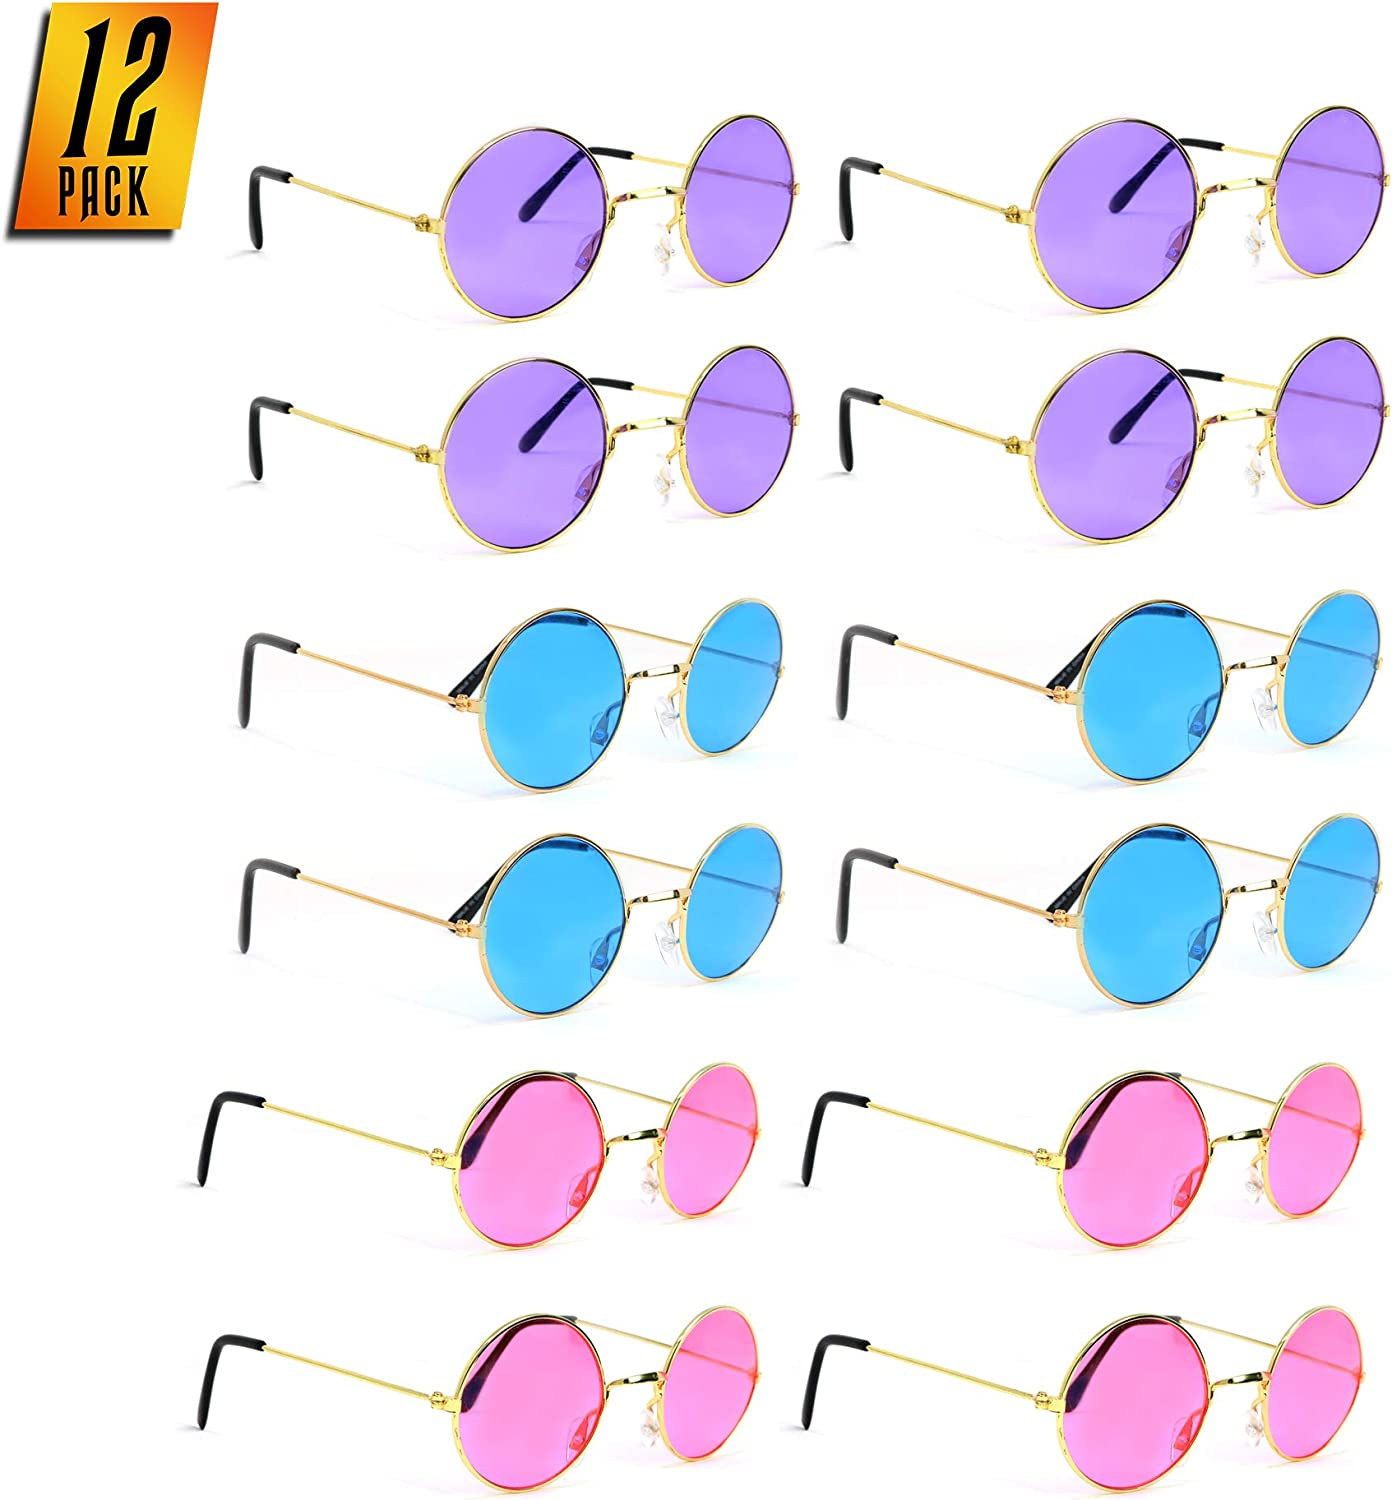 Skeleteen Tinted Round Hippie Glasses – Pink Purple And Blue 60's Style Hipster Circle Sunglasses - 12 Pairs